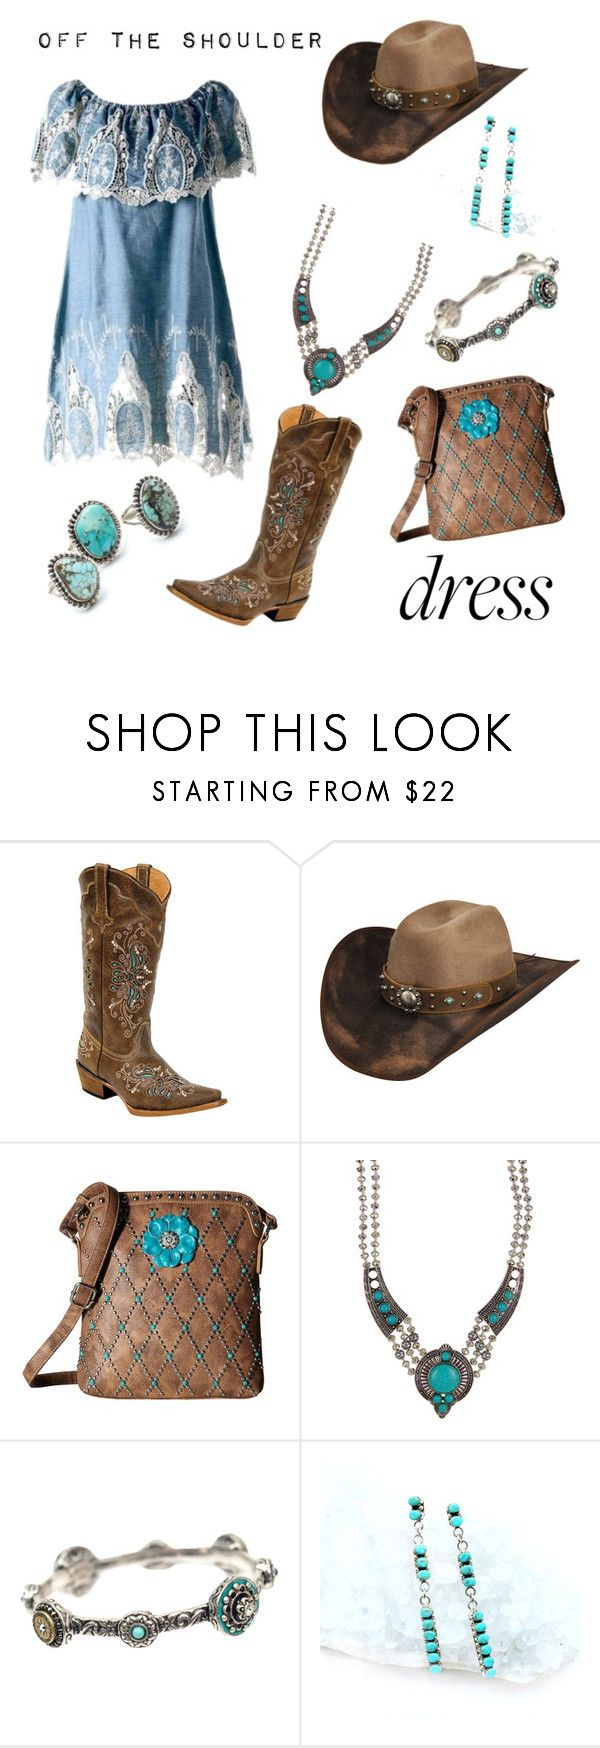 """Off The Shoulder Dress"" by dayna-marie ❤ liked on Polyvore featuring Bailey Western, M&F Western, Eye Candy, Sweet Romance and Child Of Wild"